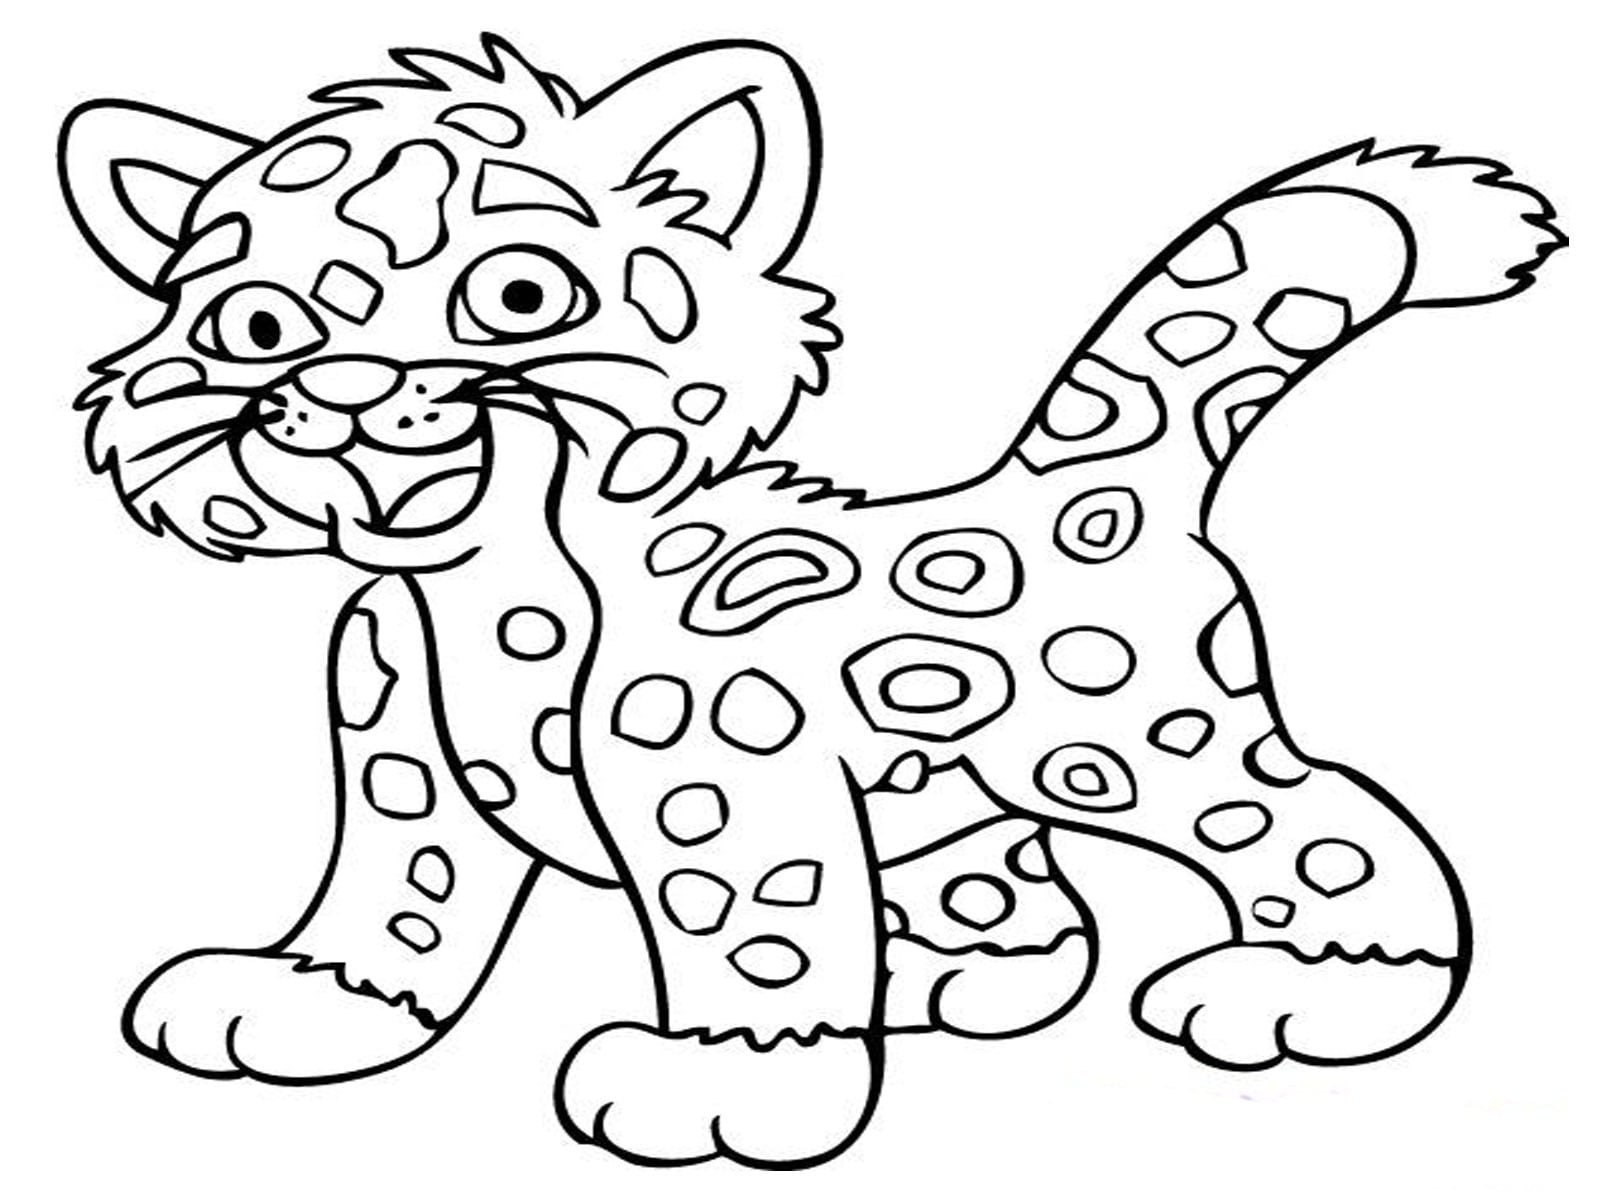 Bold Design Coloring Pages Com Free Printable For Adults